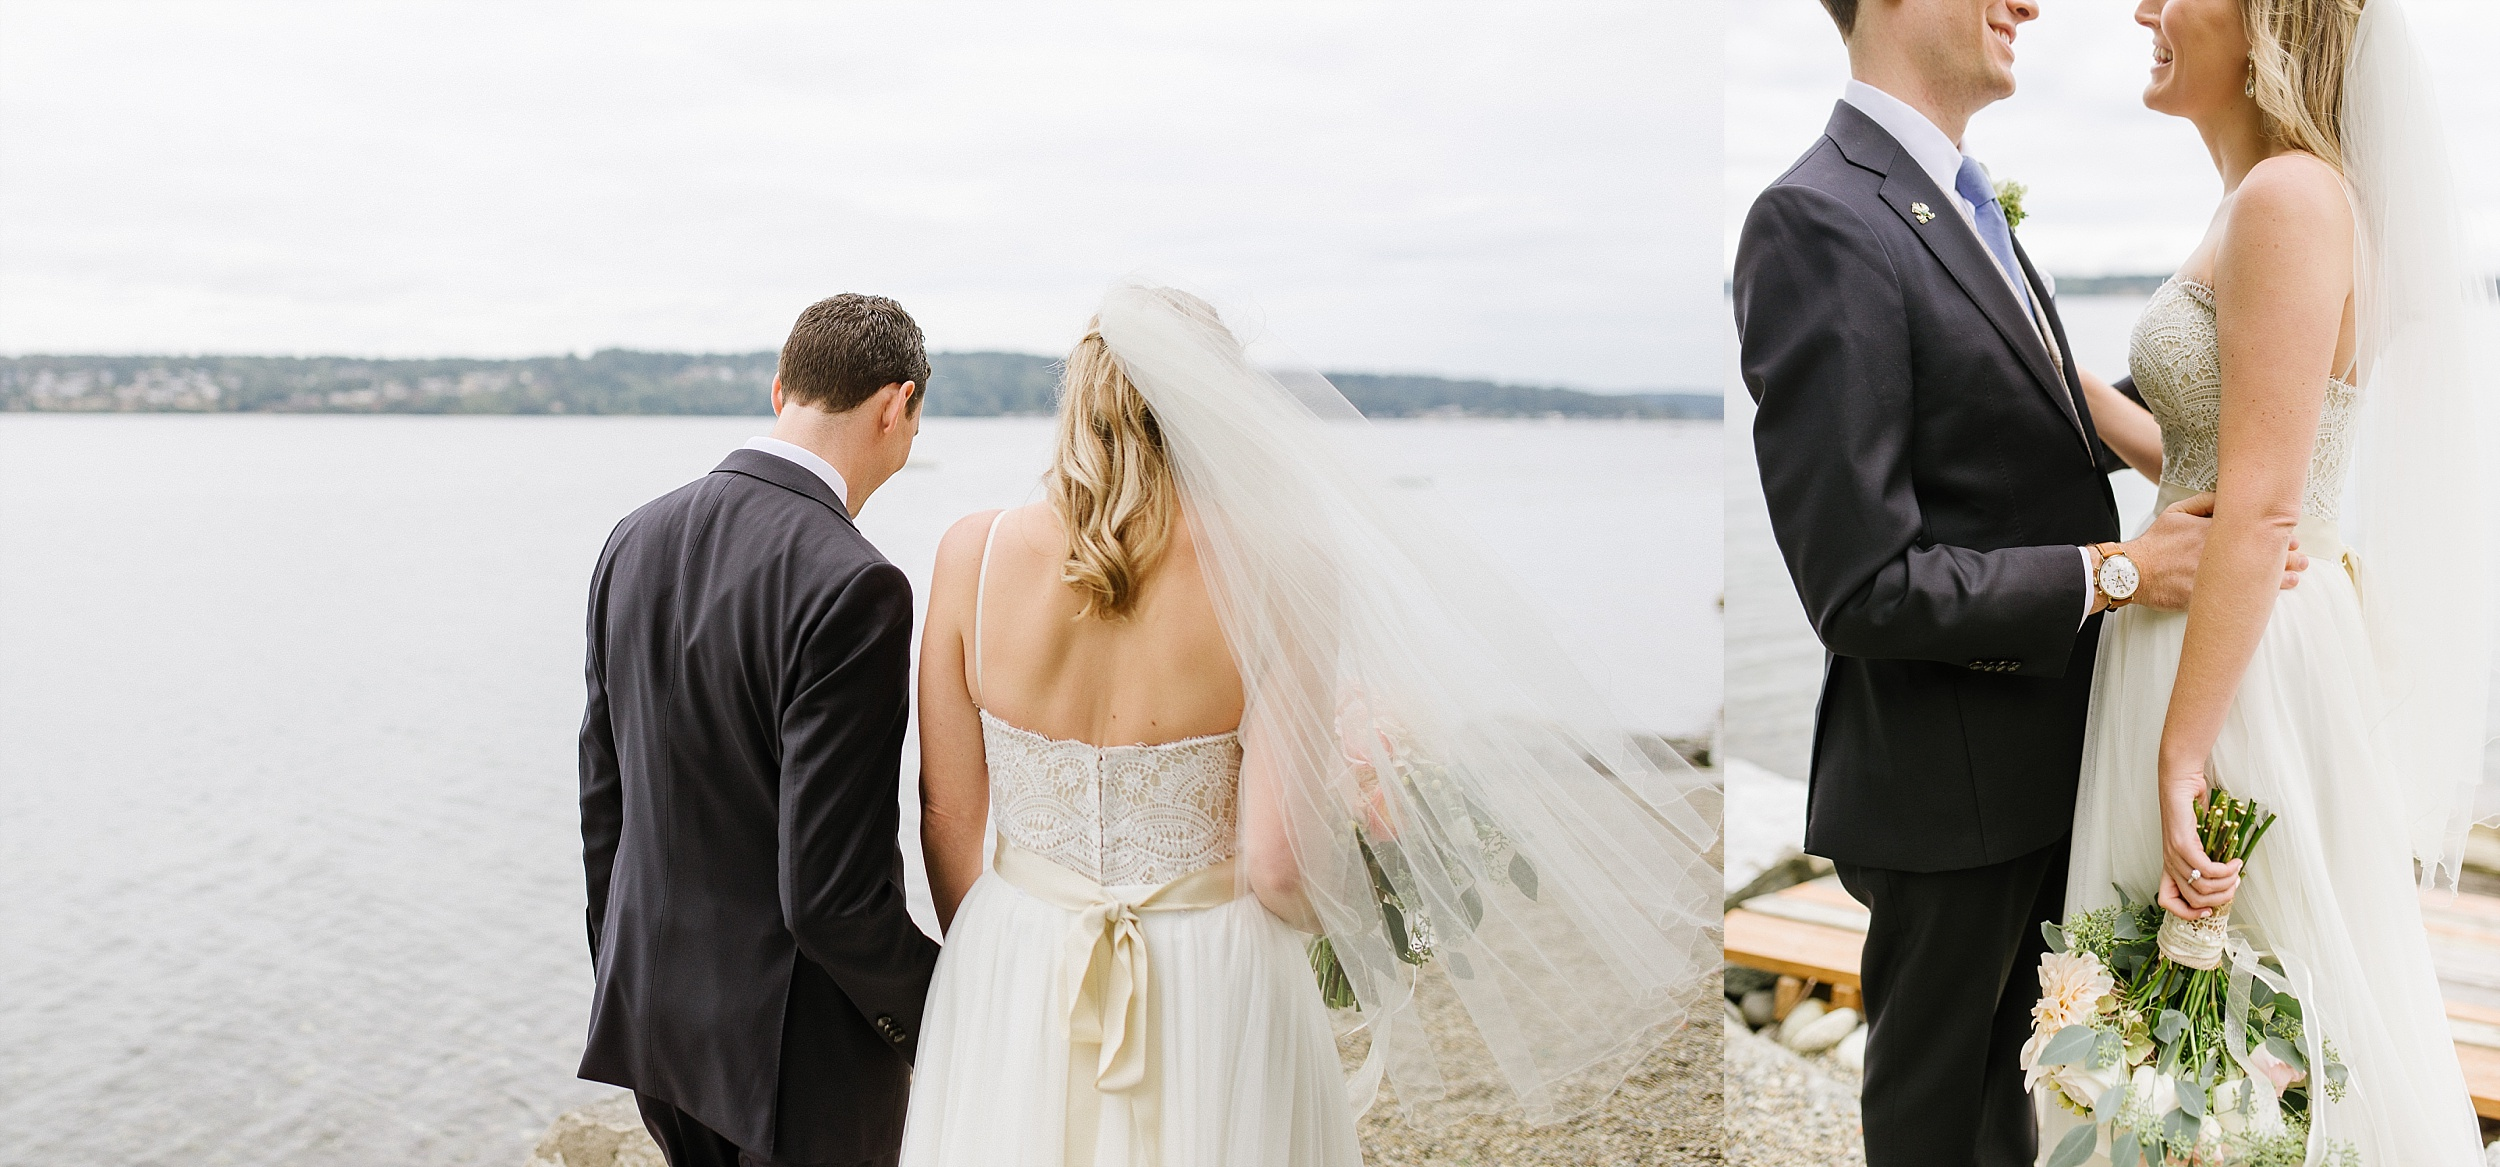 gig_harbor_washington_wedding_danacolin_cdp_0021.jpg